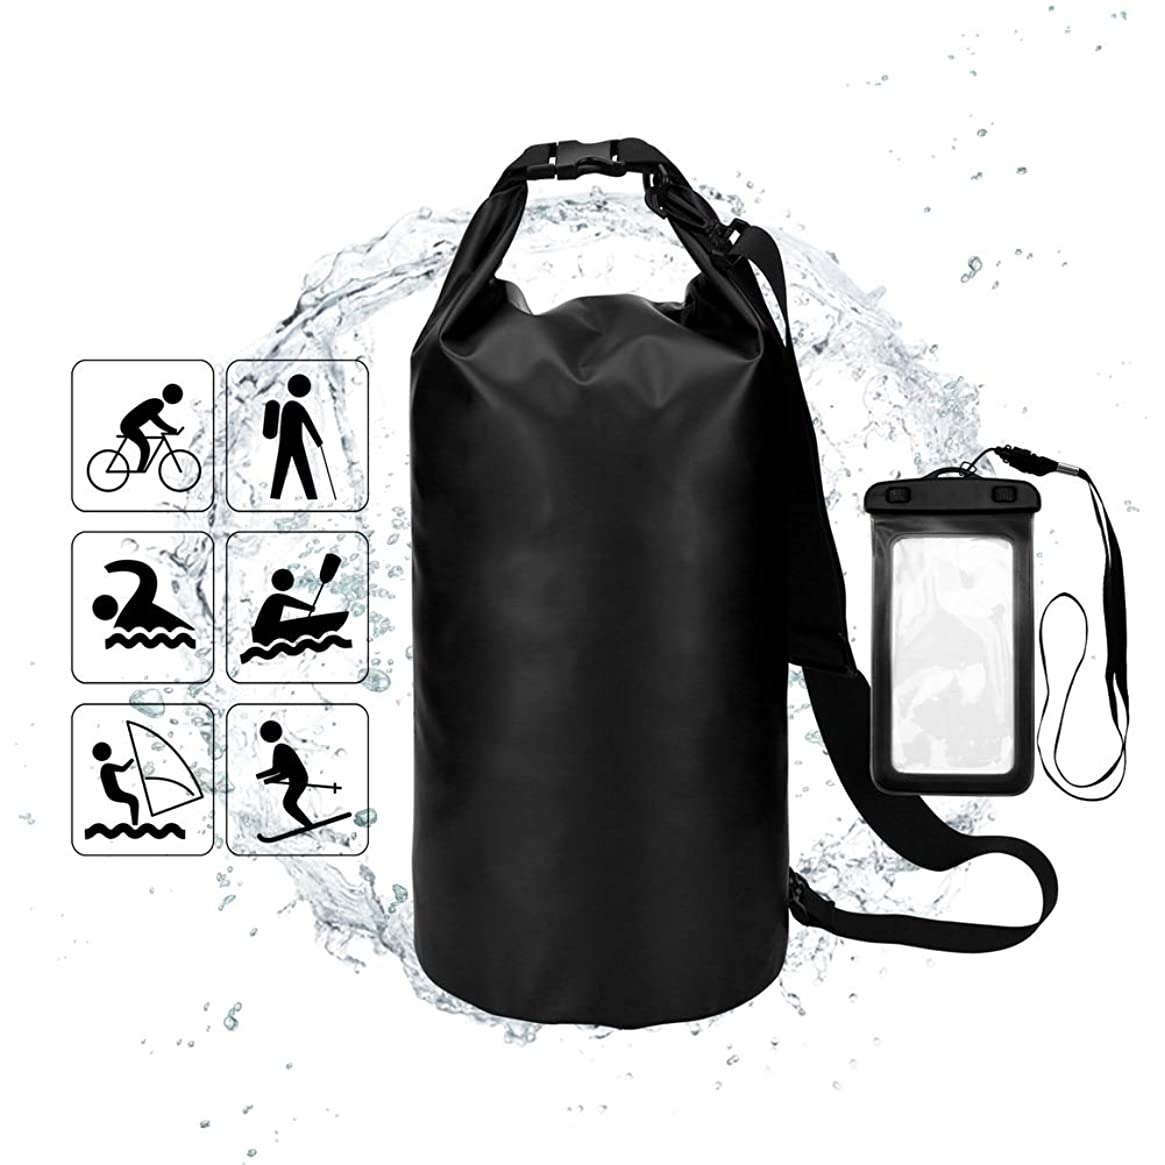 YEFFO Floating Waterproof Dry Bag 10L-500D PVC Tarpaulin| Floating Dry Gear Bags for Boating,Kayaking,Rafting,Fishing, Swimming,Hiking and Camping with Waterproof Phone Case(Black+Black)